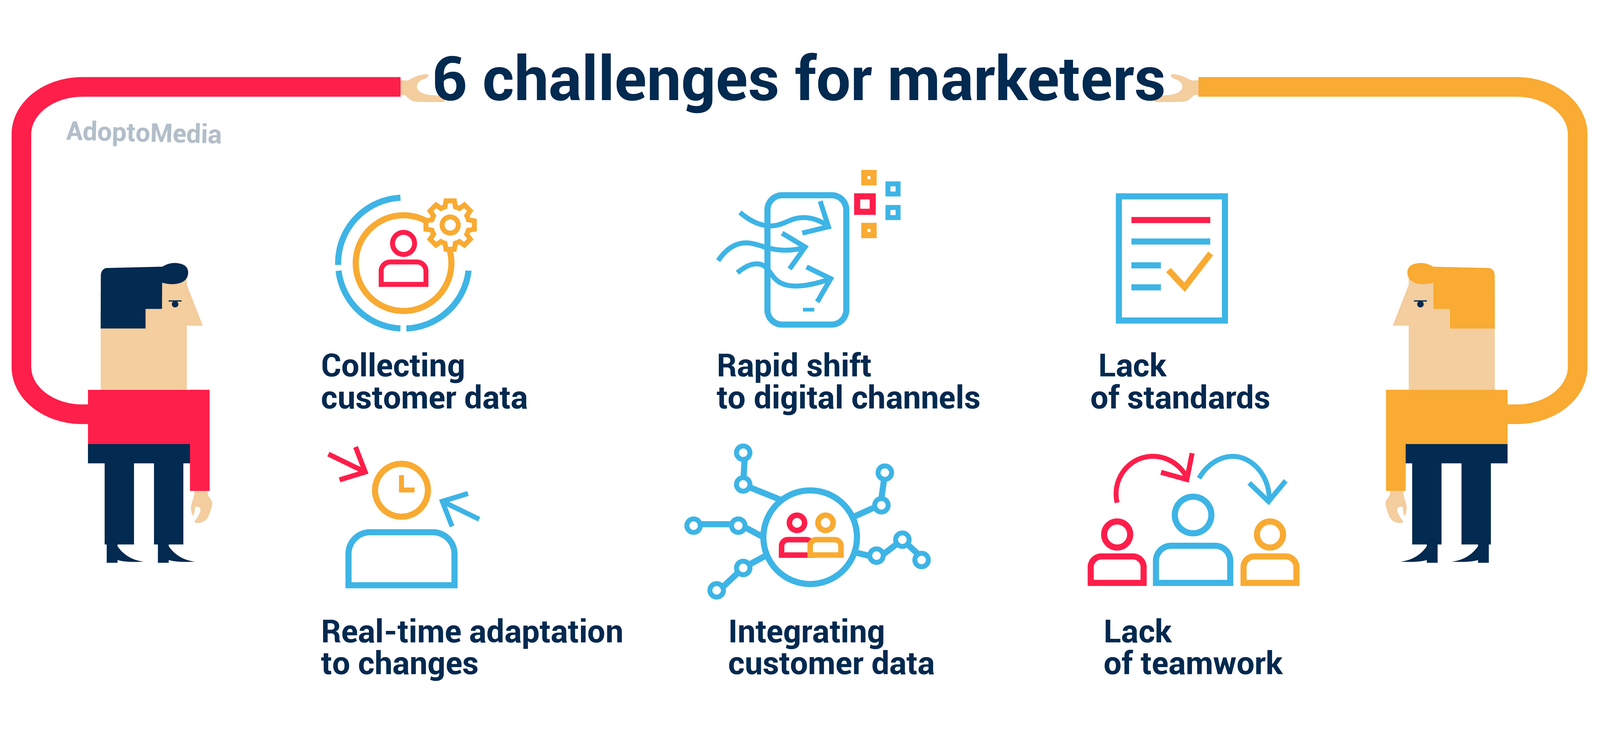 challenges for marketers, marketing technology, customer data collection, customer portfolio, marketing effectiveness measurement, interdepartmental collaboration